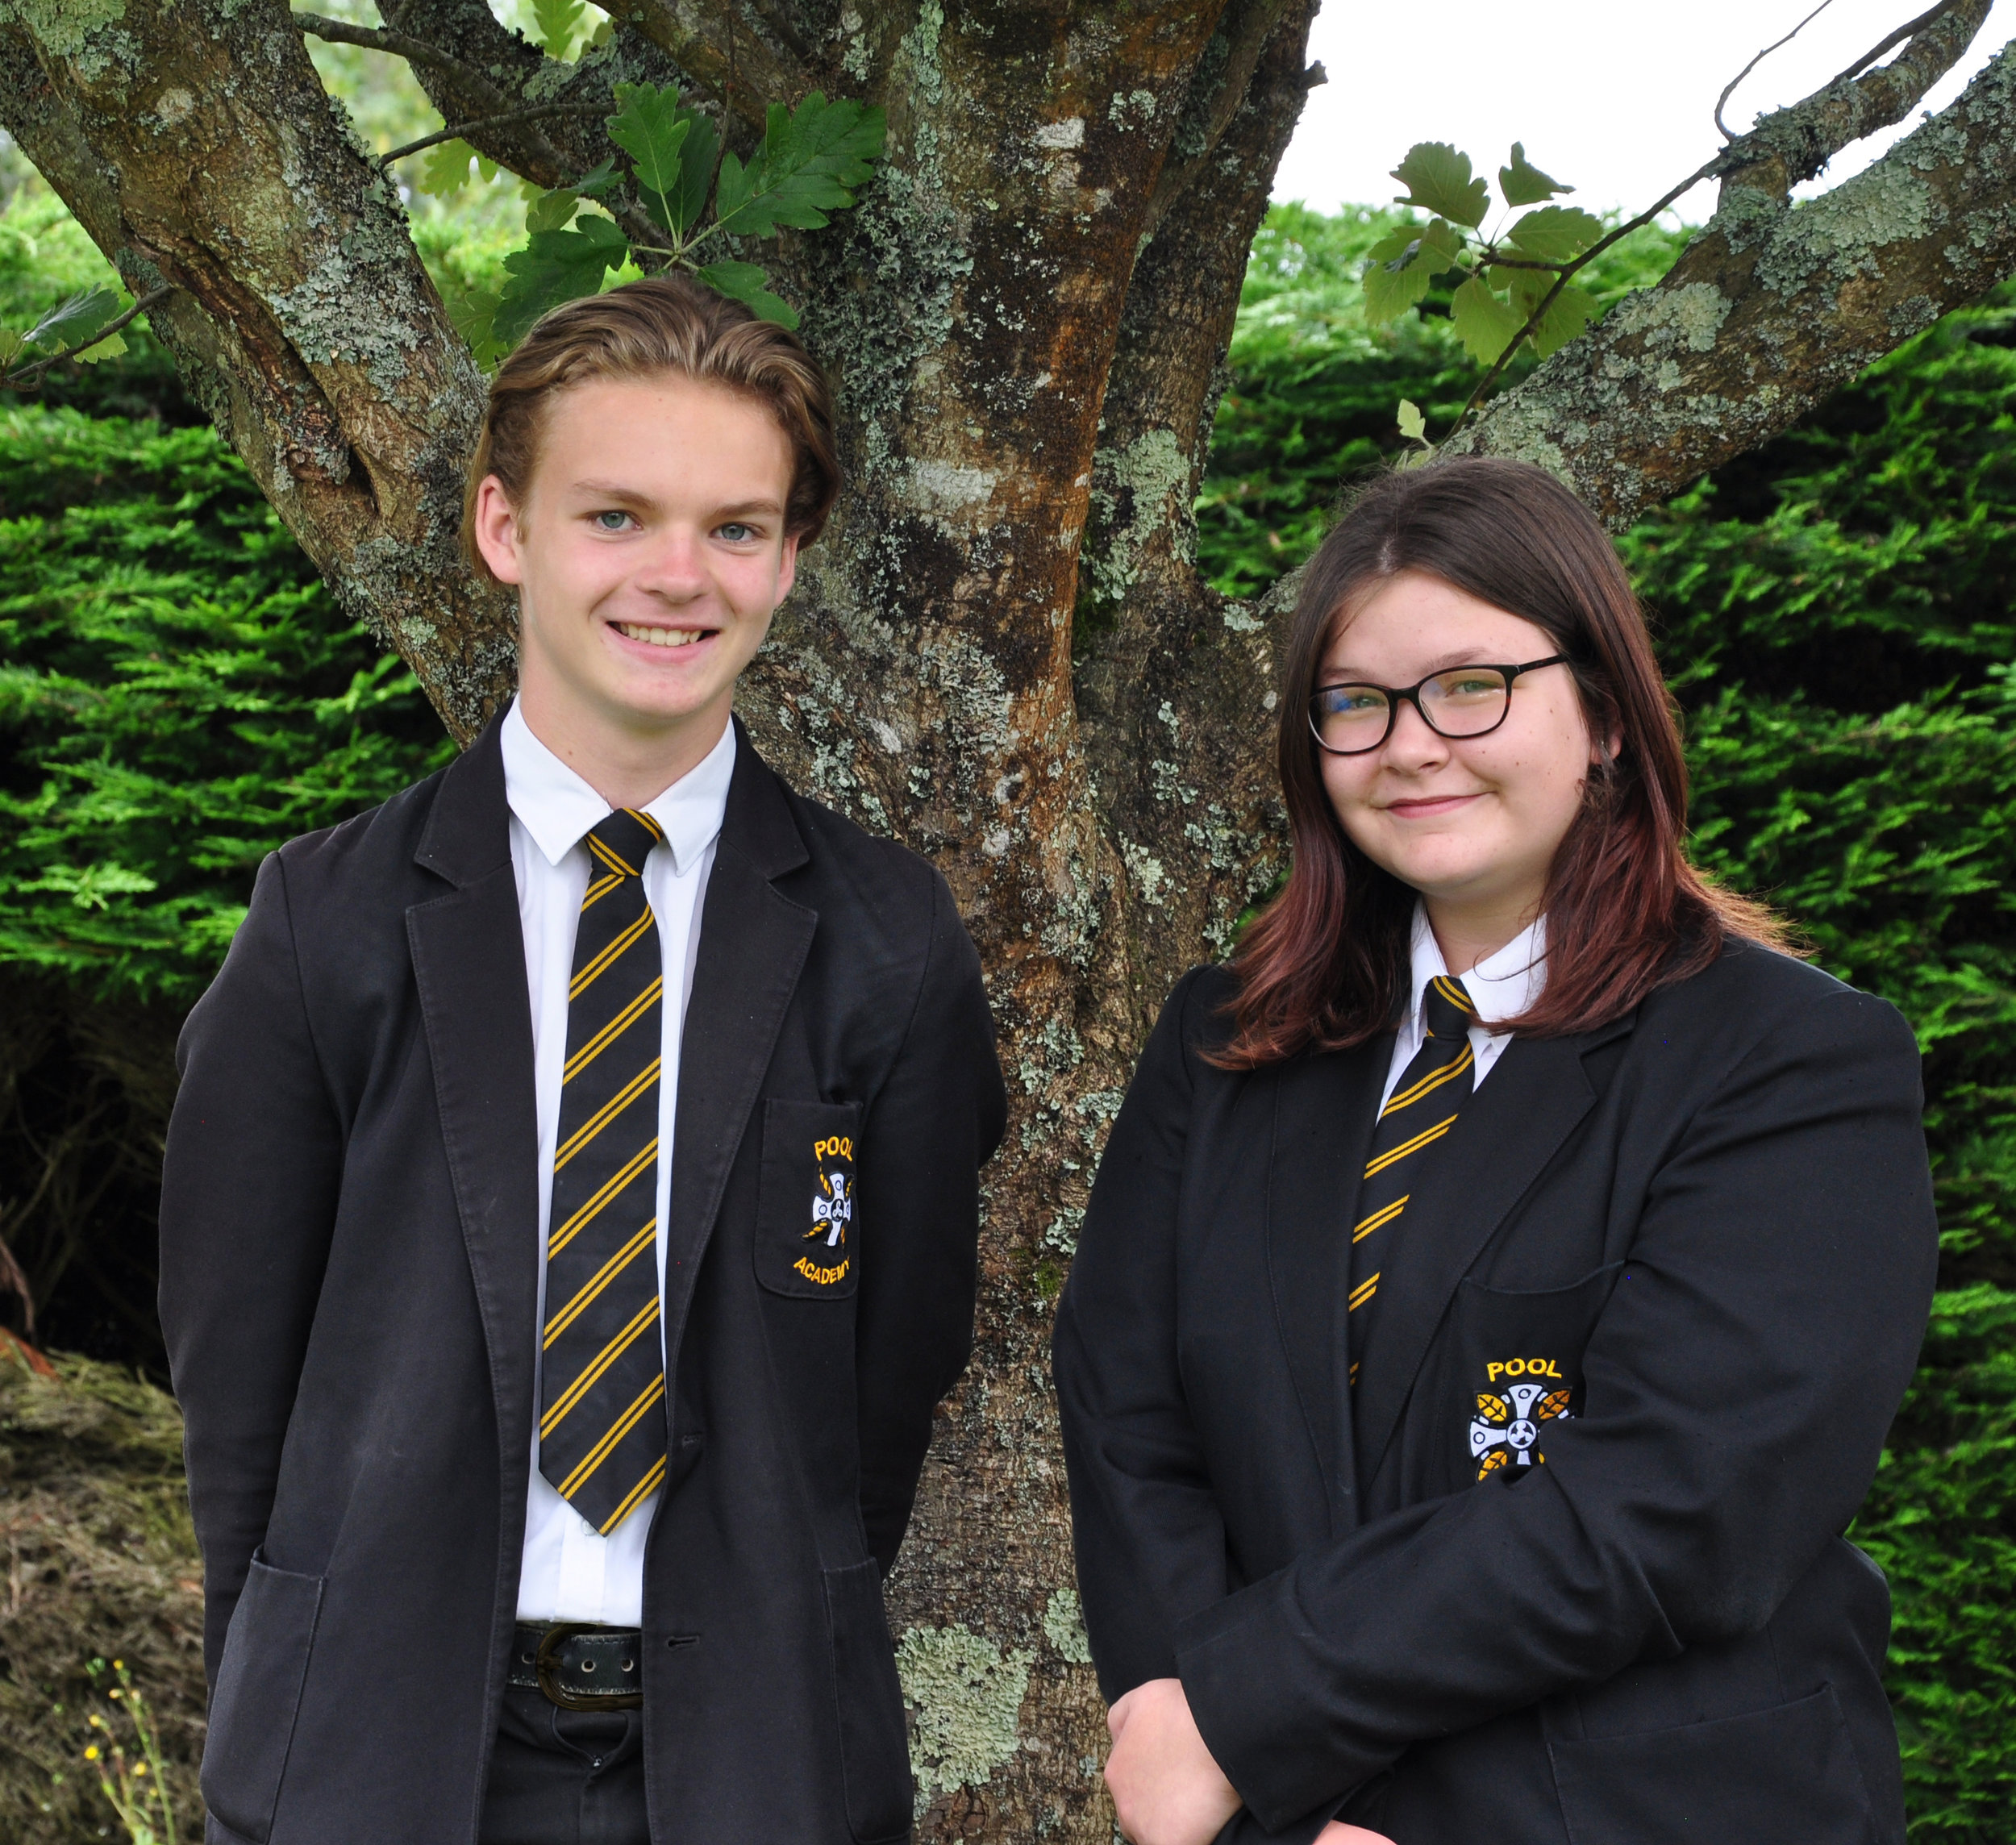 Head Boy and Head Girl for this academic year.